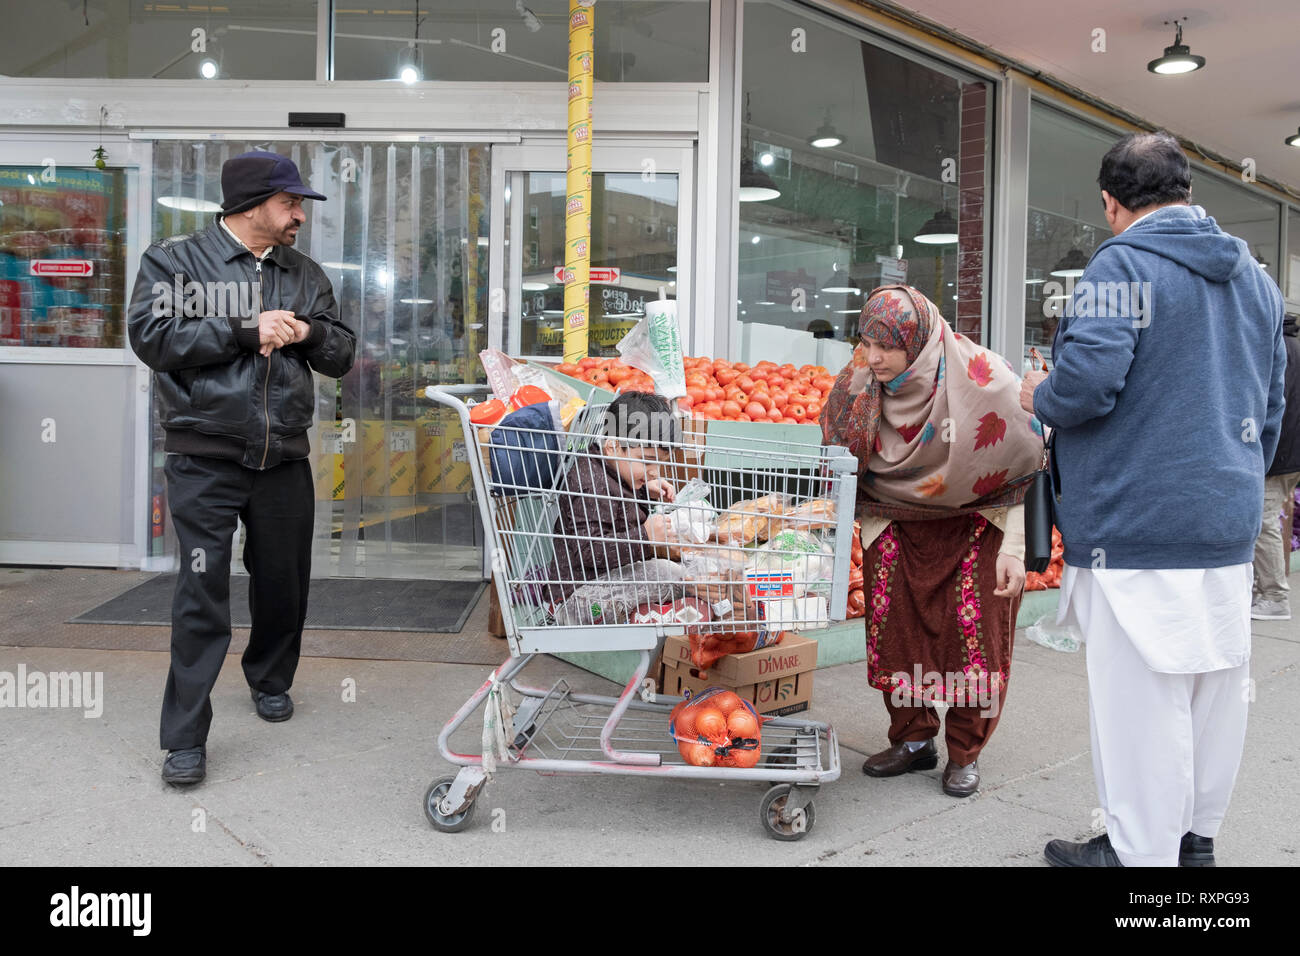 A scene outside the Apna Bazaar supermarket with a family & child in a shopping cart.  In Jackson Heights, Queens, New York City - Stock Image